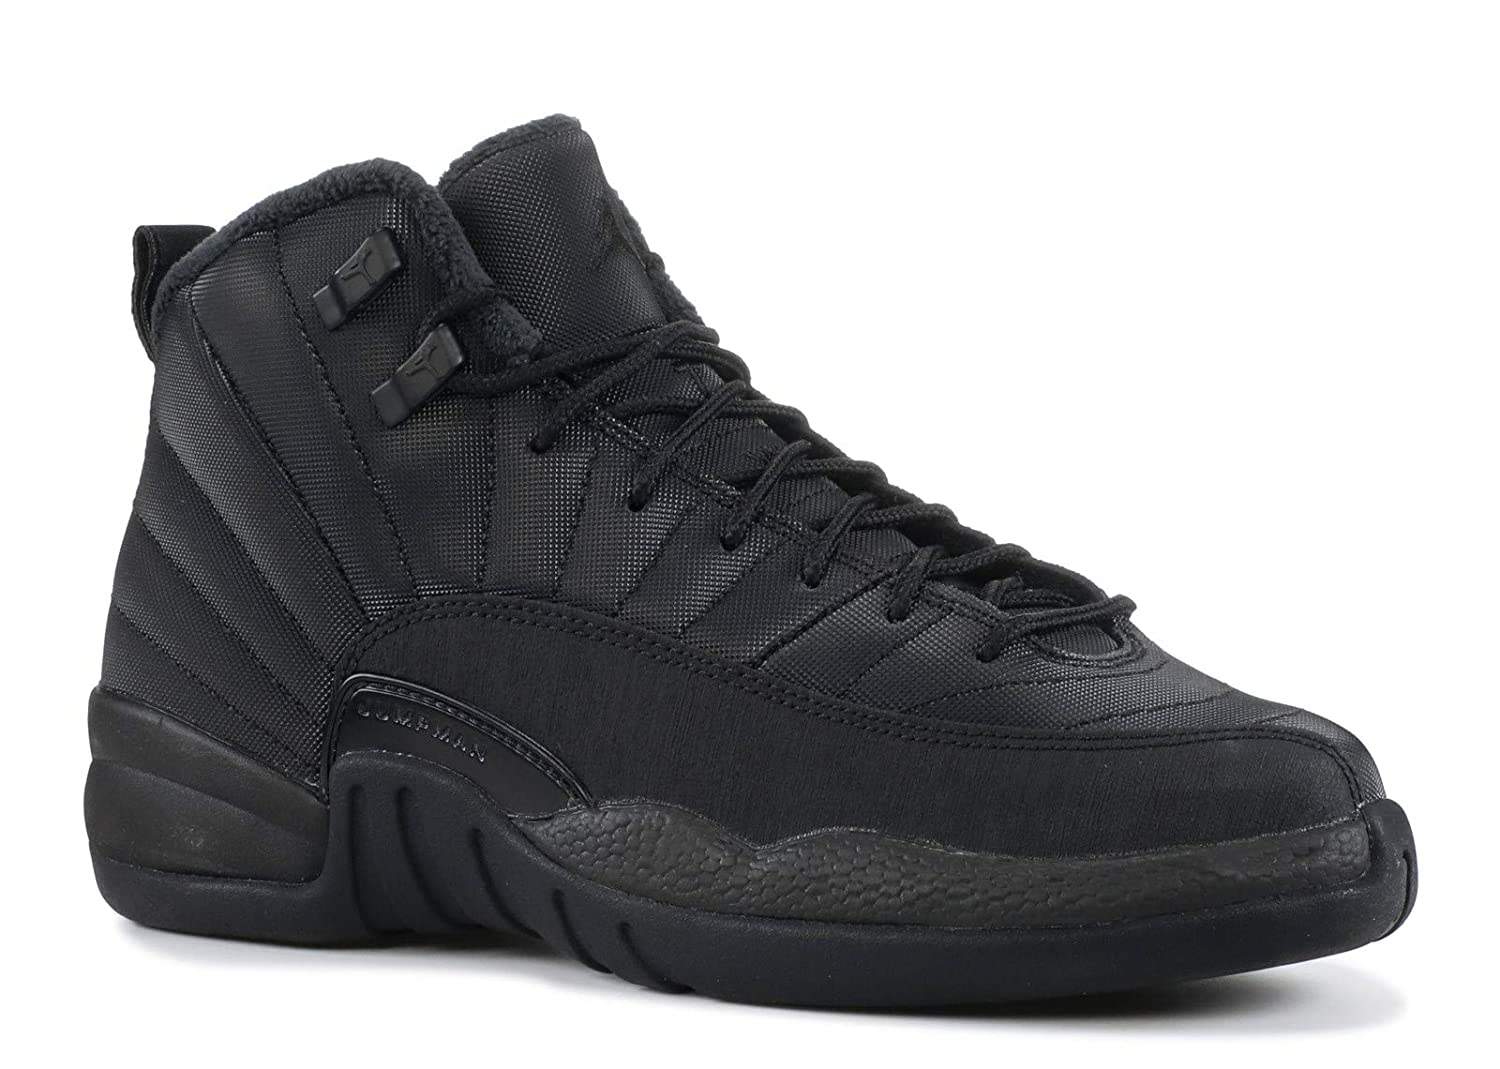 Nike Air Jordan 12 Retro Winter